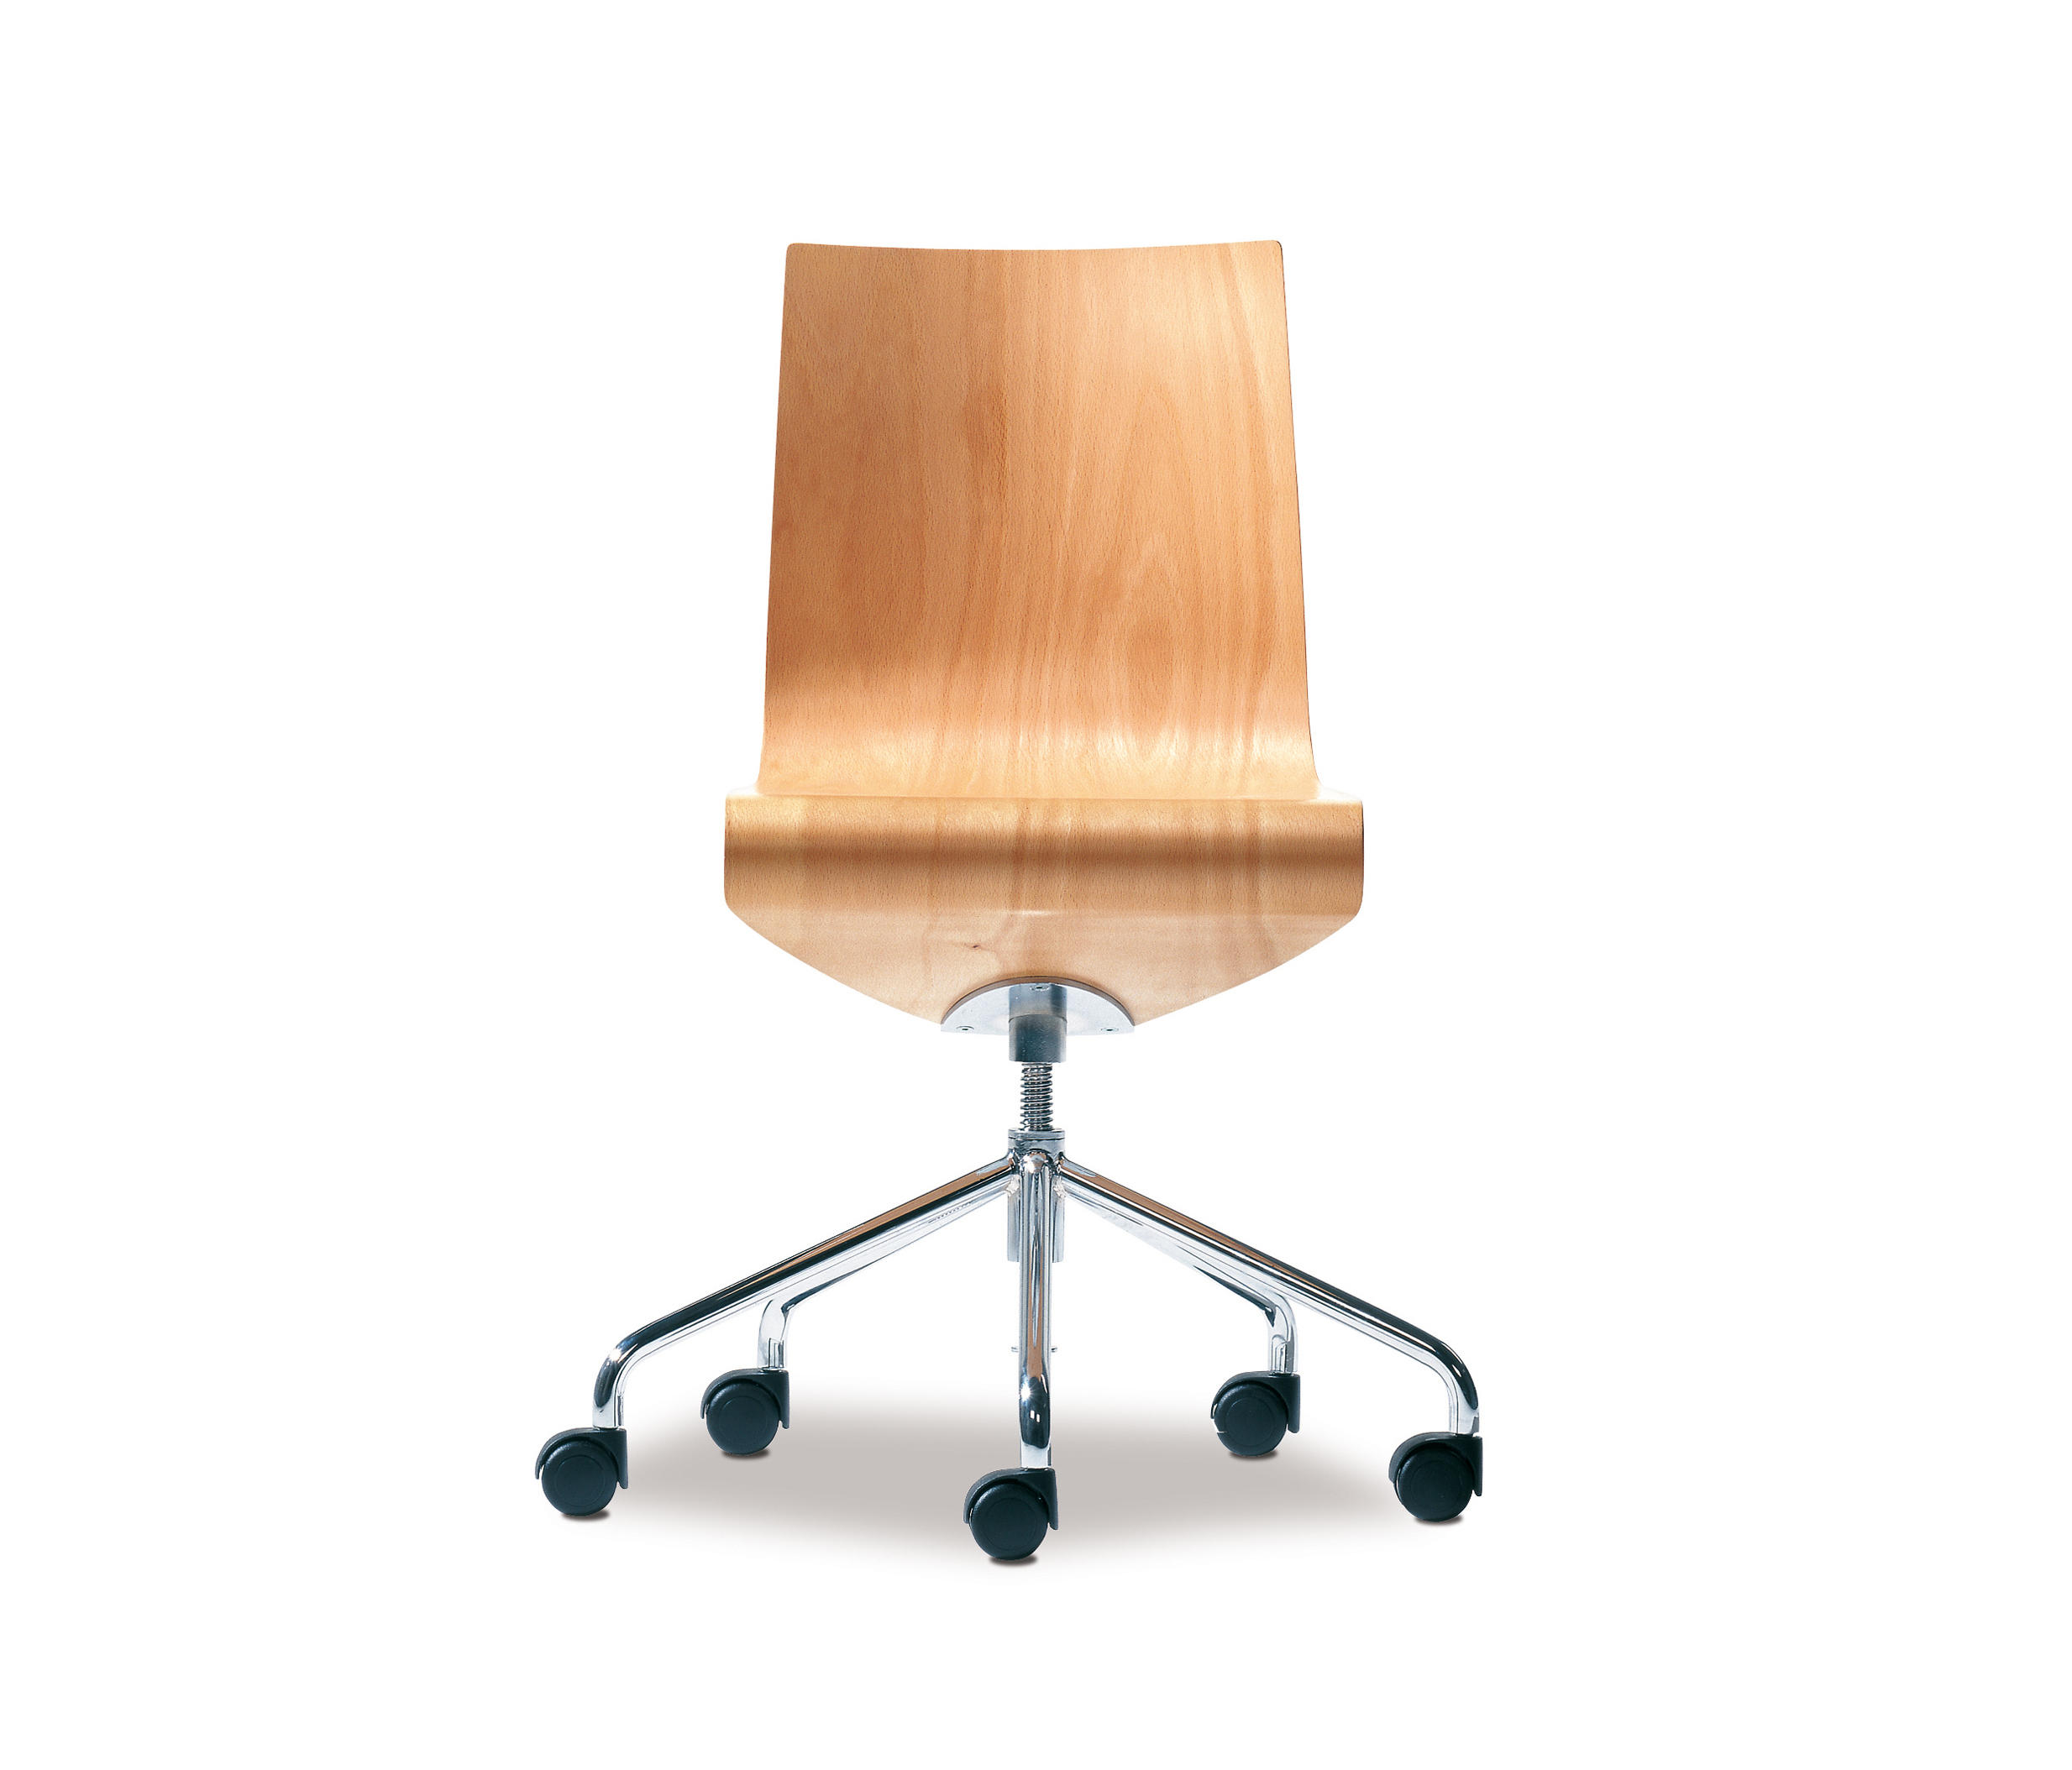 Working Chair Seesaw Working Chair Office Chairs From Richard Lampert Architonic